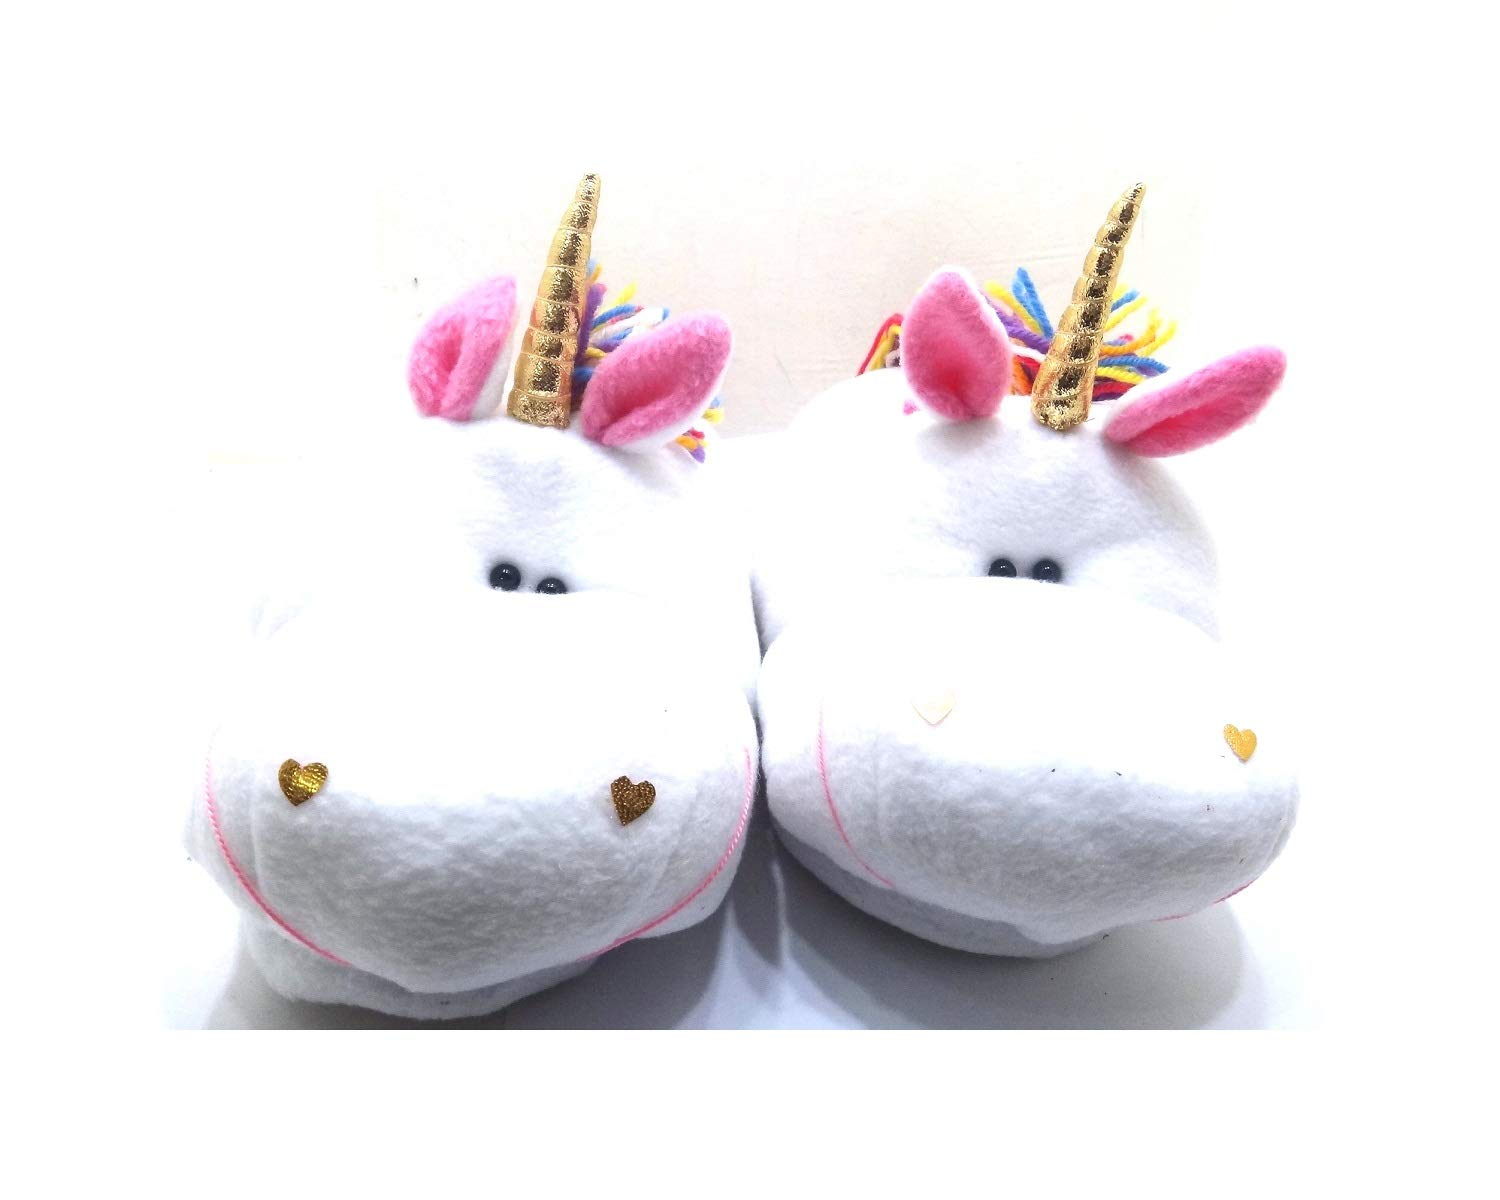 GSC Moda 3D Unisex Cute Unicorn Adult Toddler Kids Slippers Shoes Boy Girl Plush Soft Bedroom Indoor House